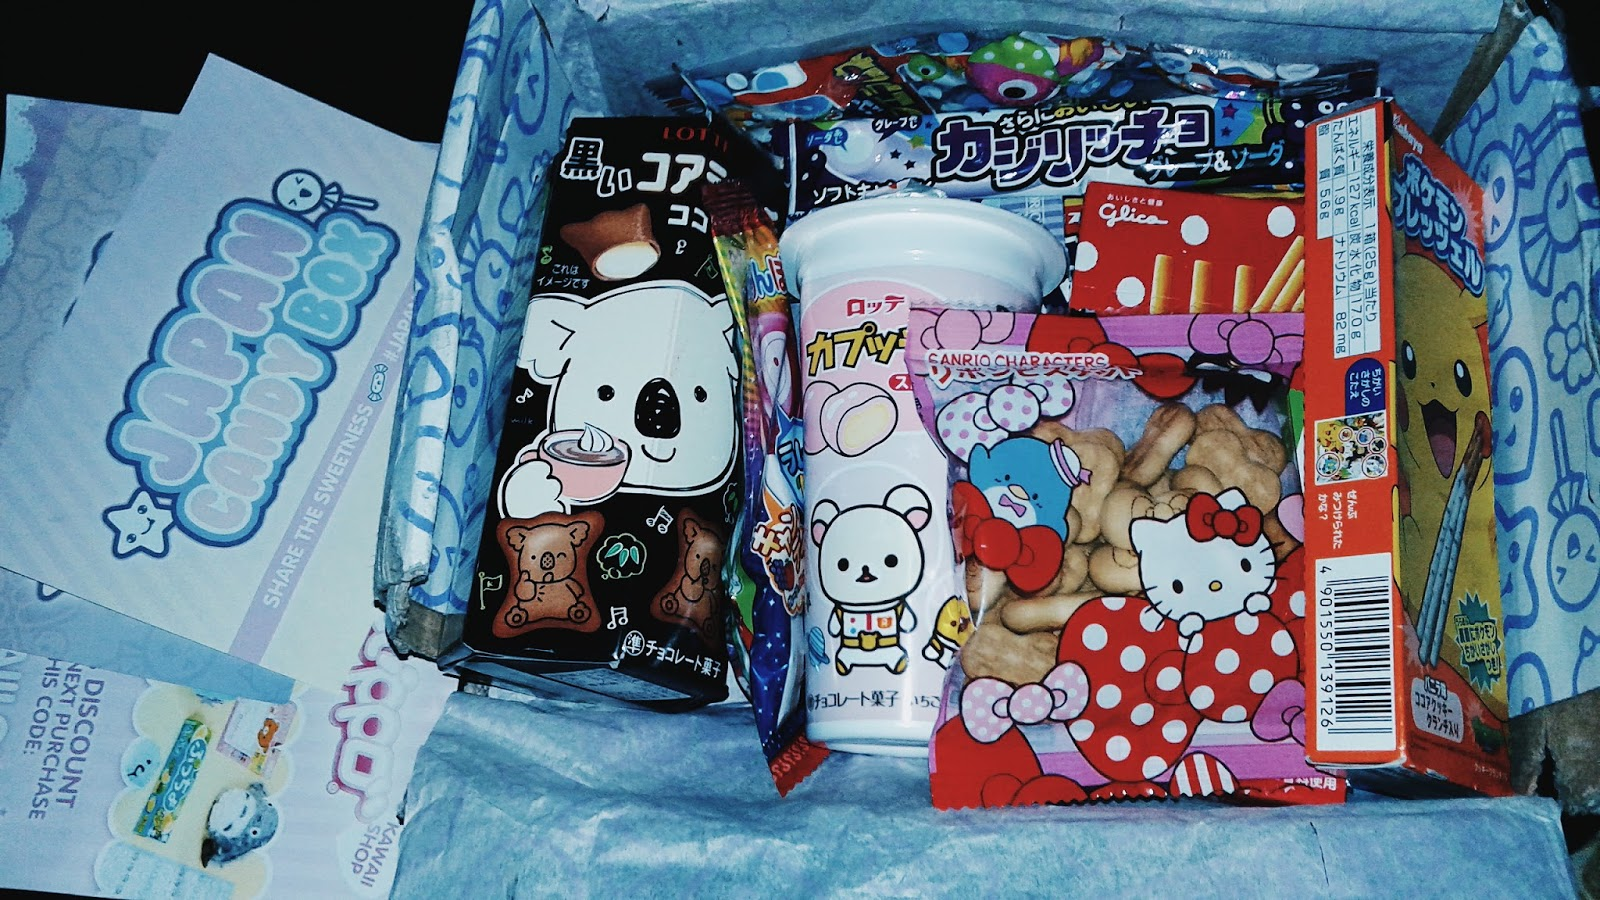 recebidos do sorteio do blog da medora com doces japonesas, a famosa japan candy box